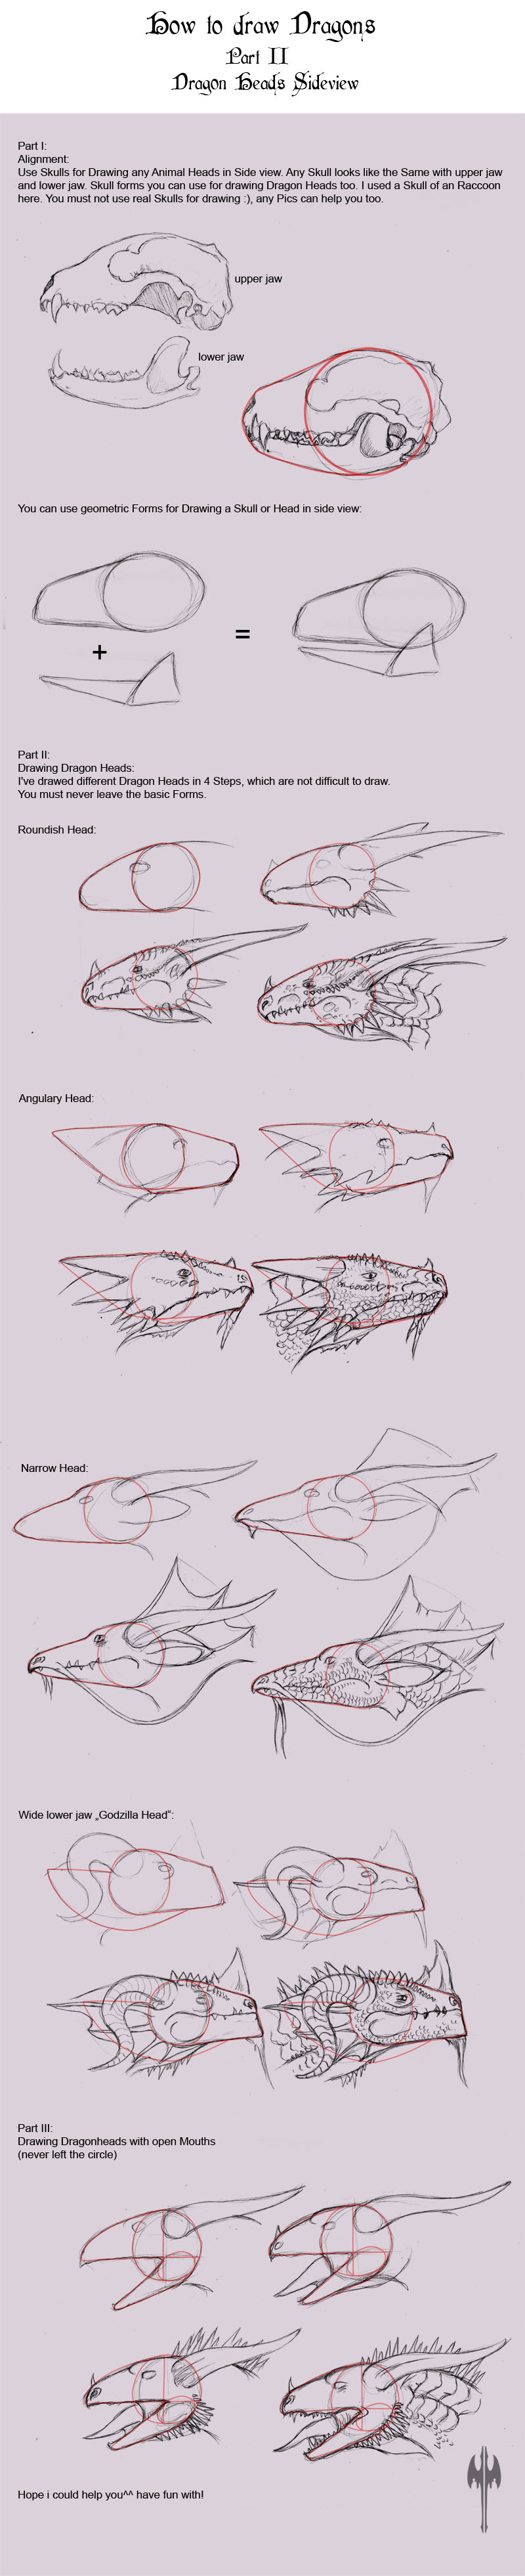 How to Draw Dragons II